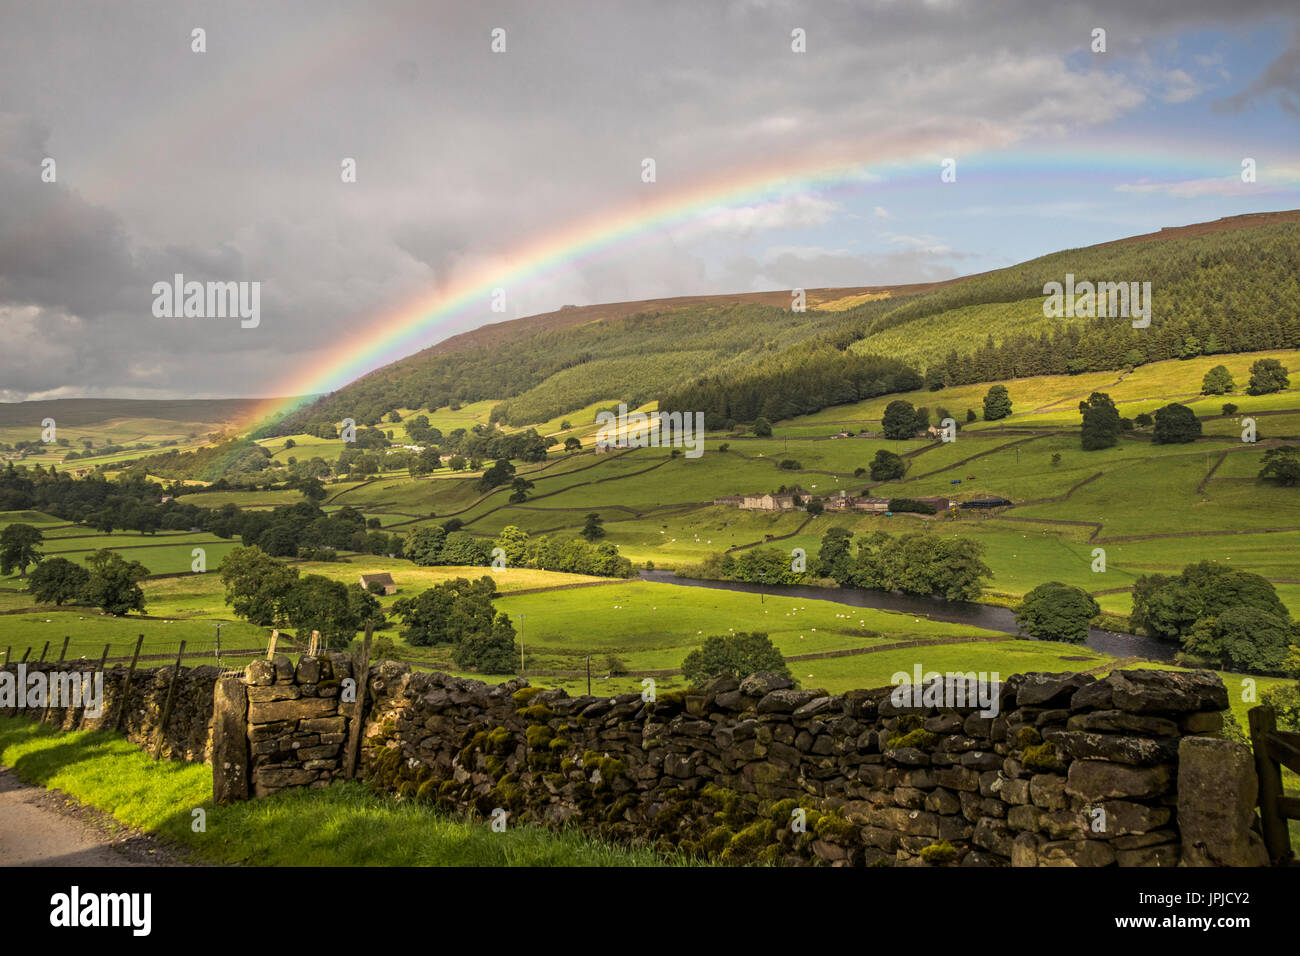 Rainbow over Simons Seat in Wharfedale, North Yorkshire, UK - Stock Image